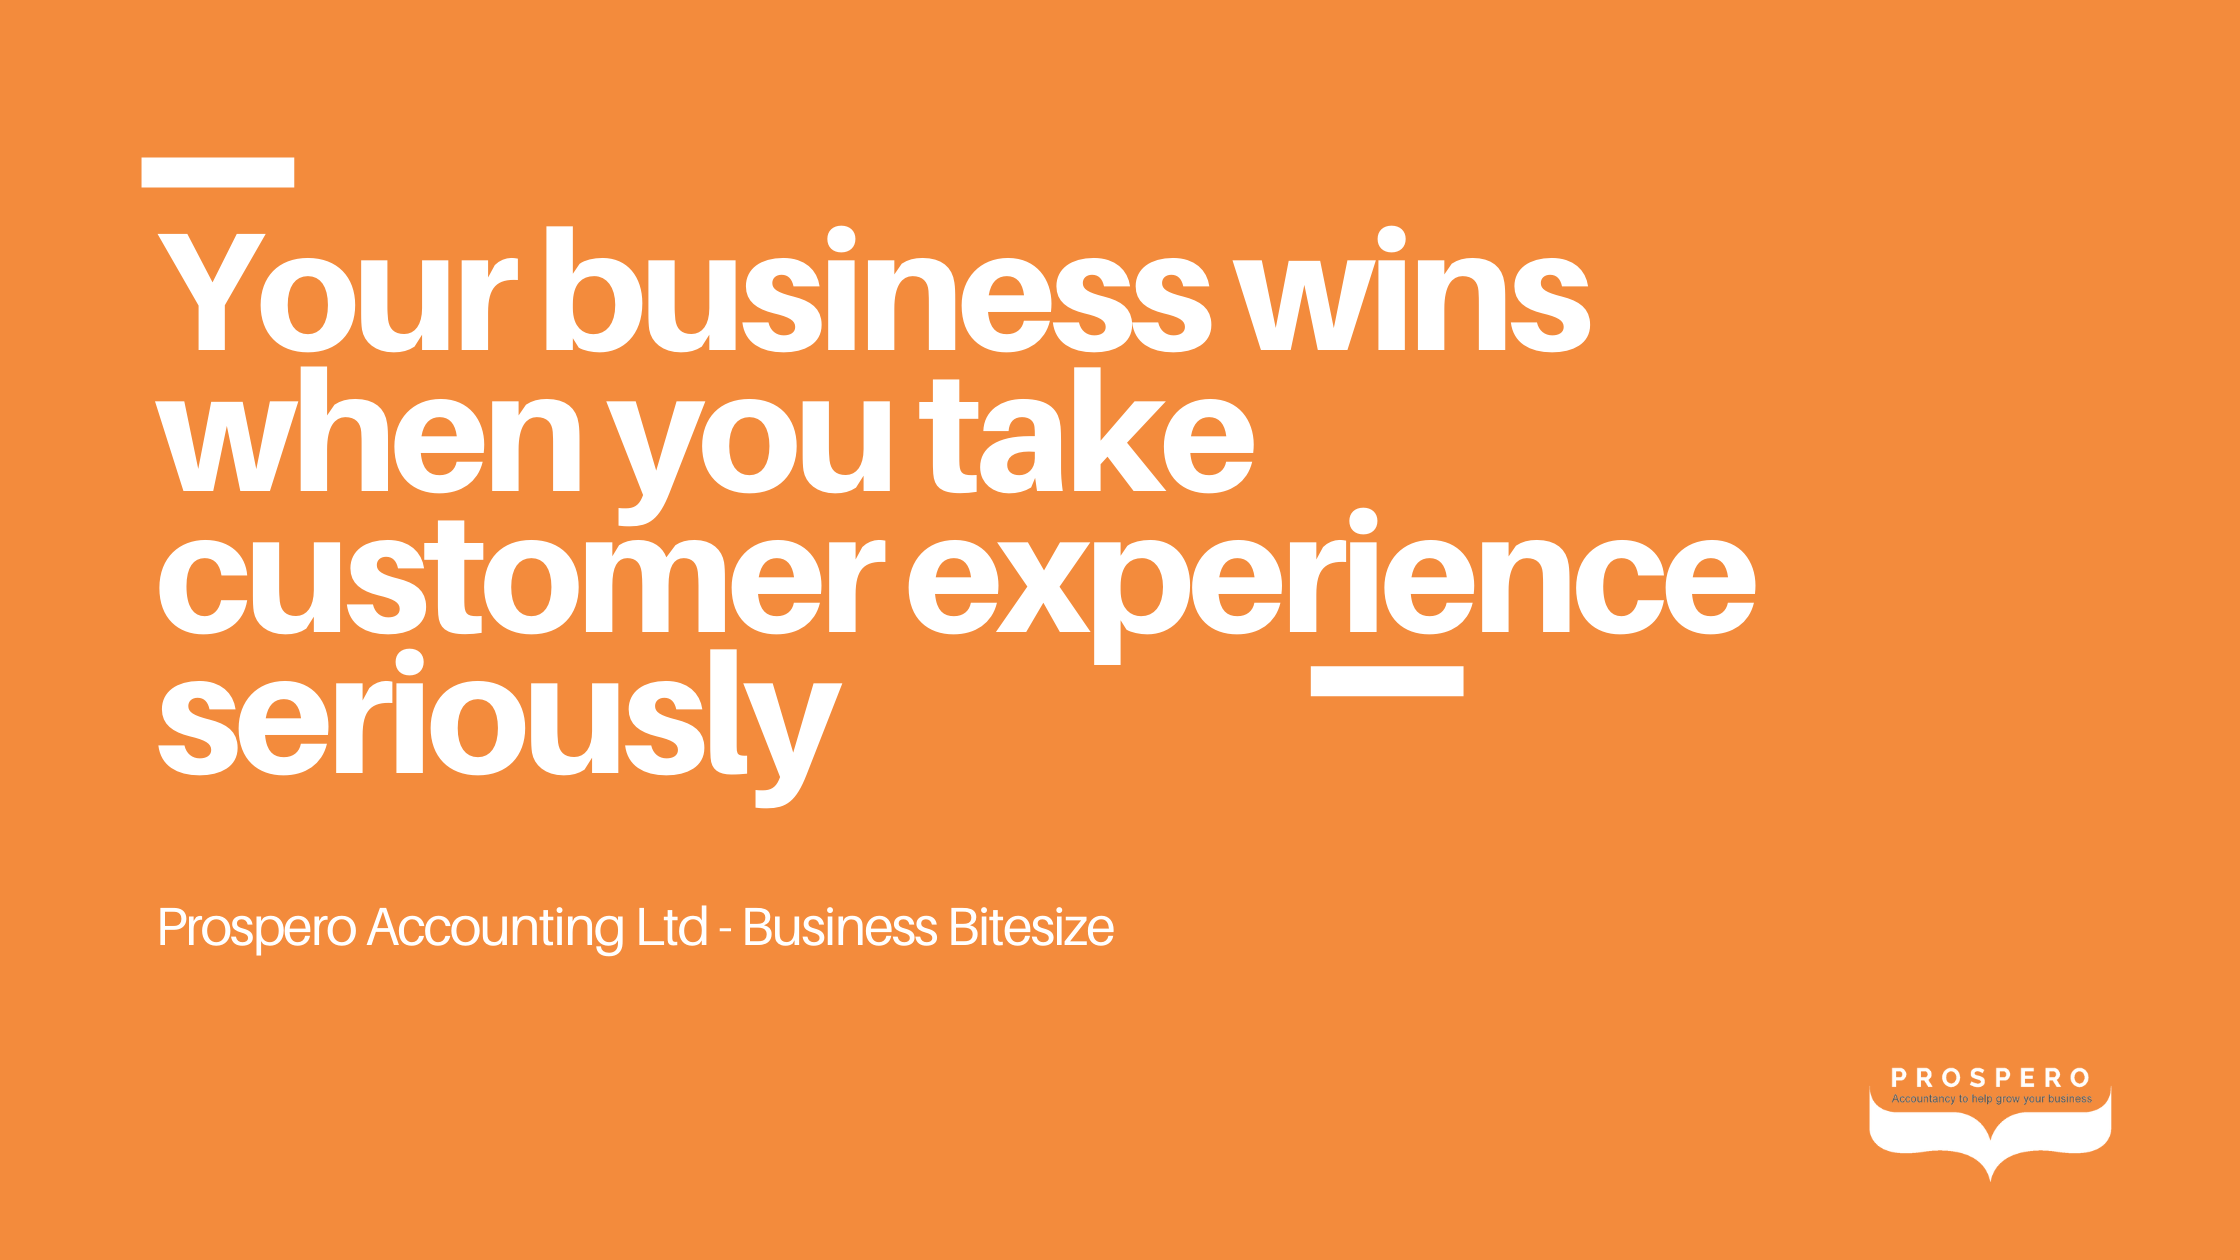 Business Bitesize - Your Business wins when you take customer experience seriously